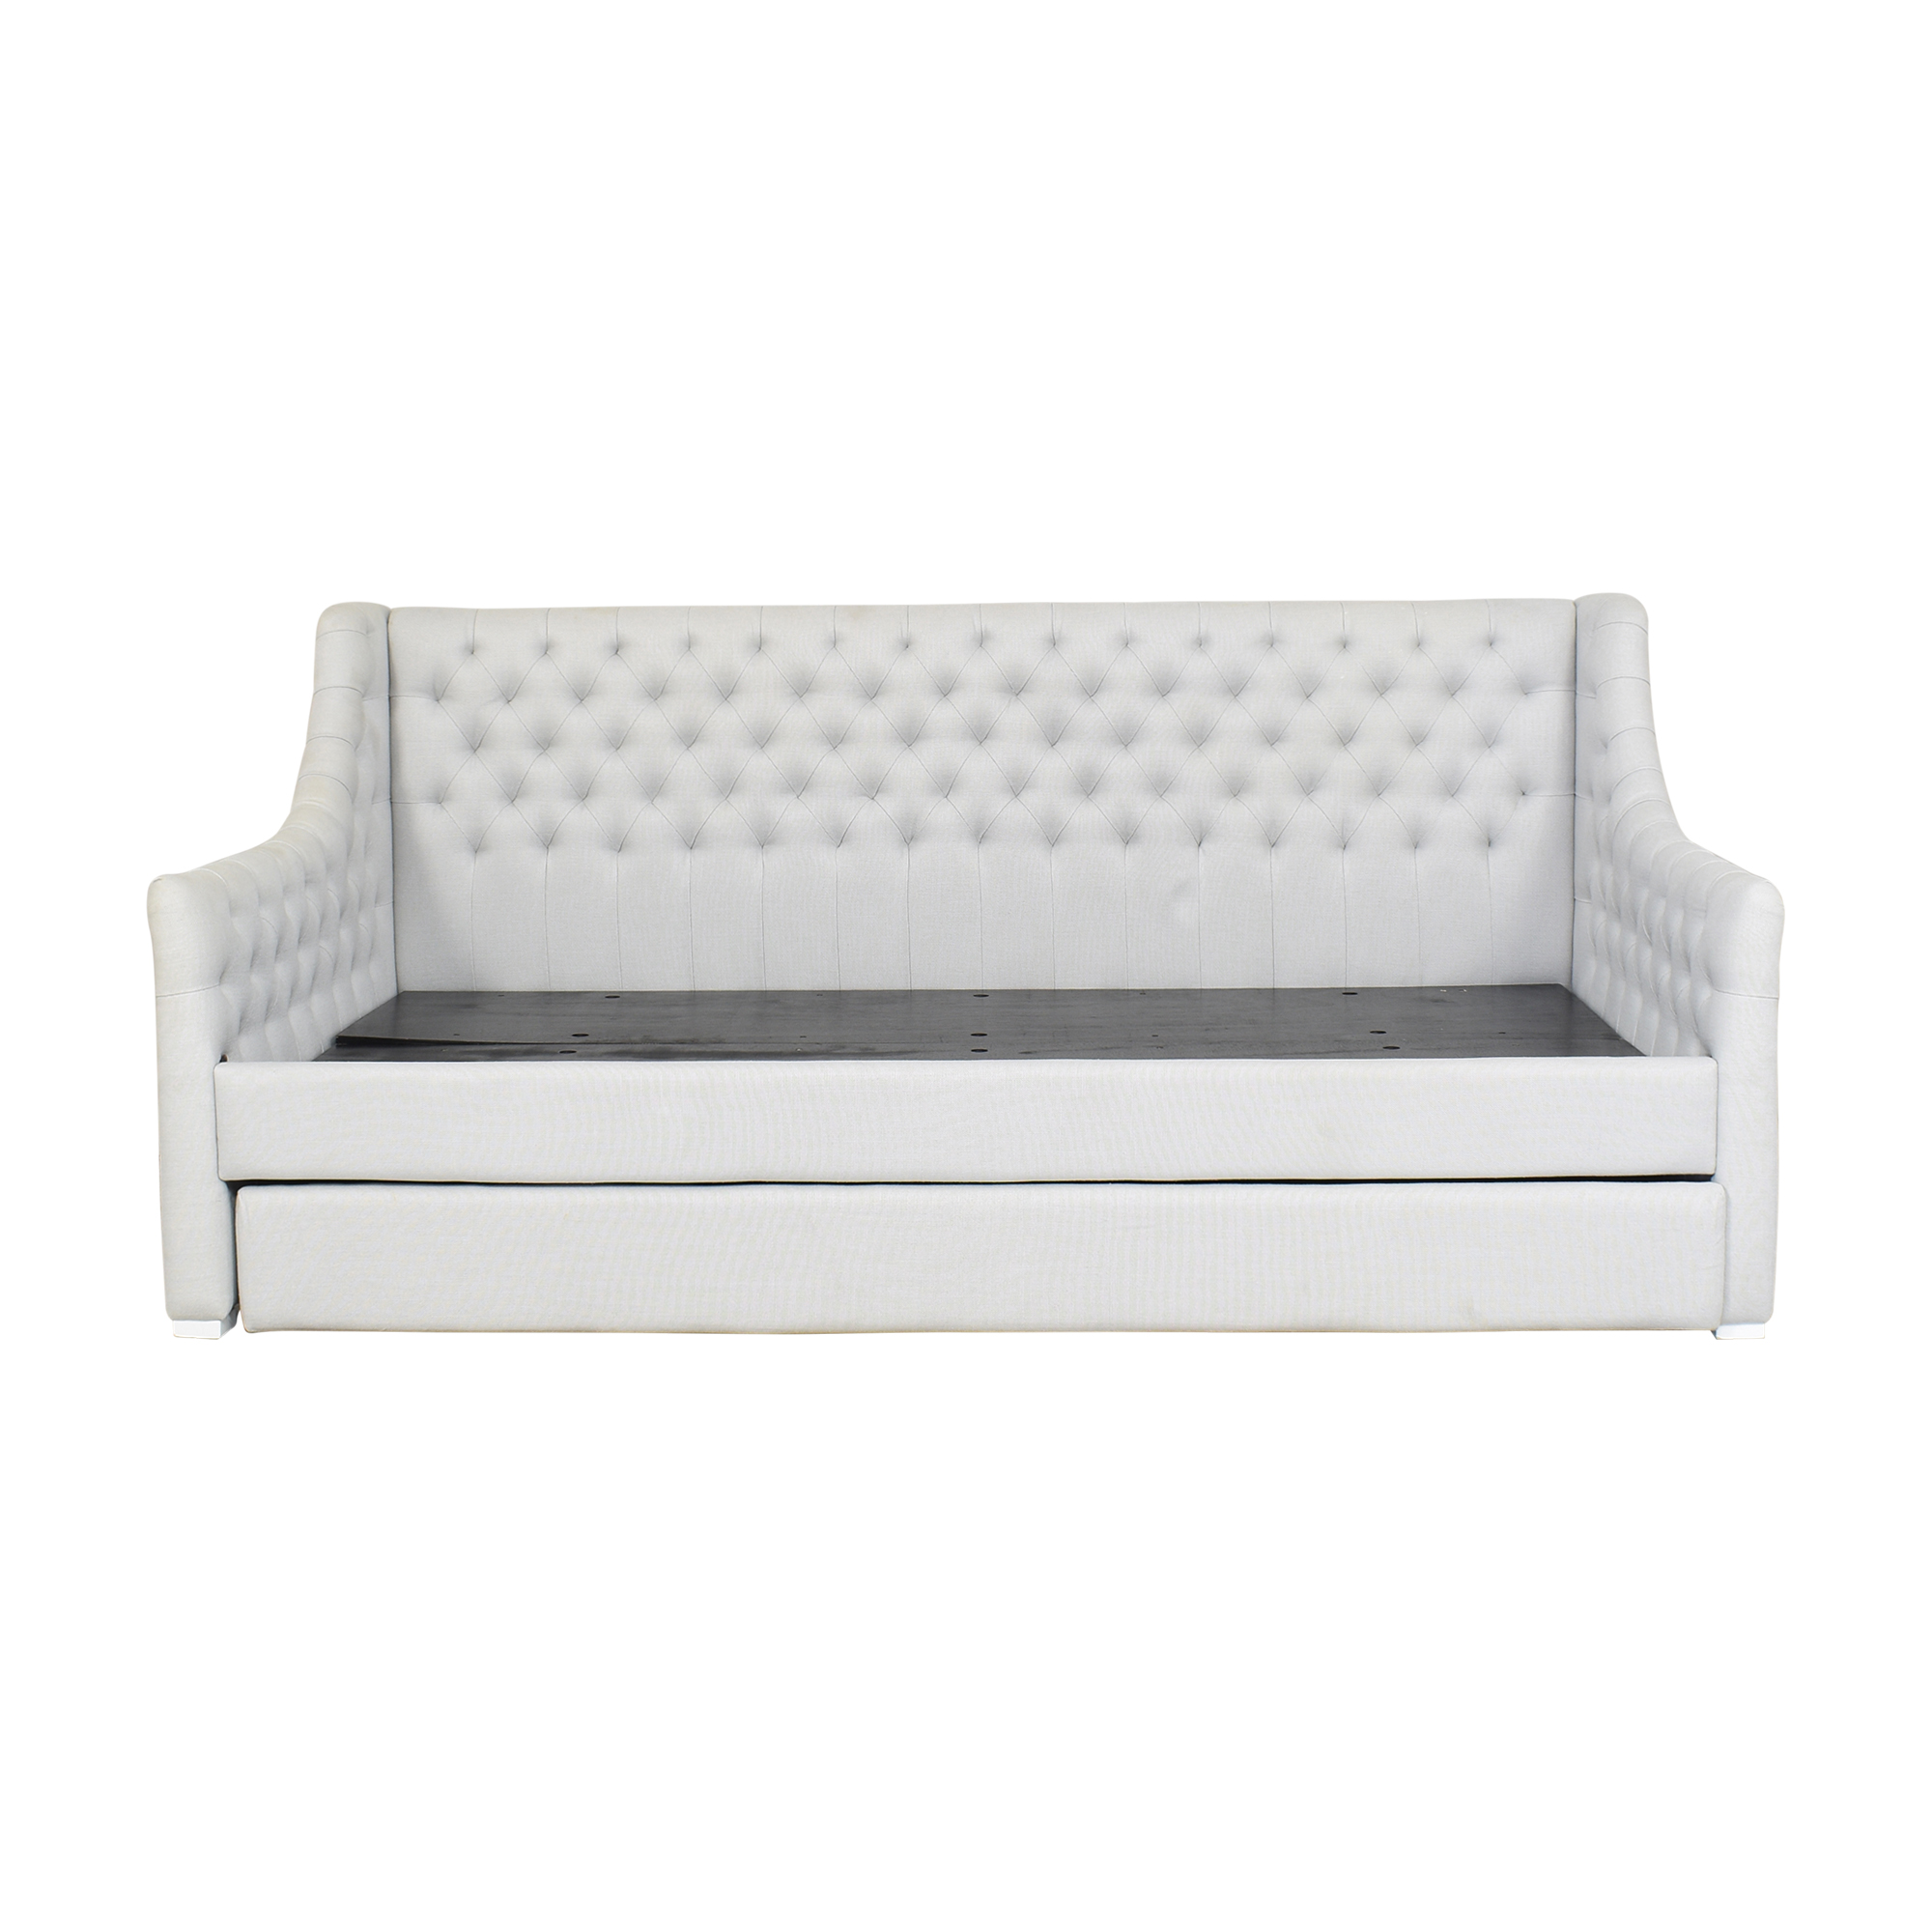 RH Baby & Child Devyn Tufted Twin Daybed with Trundle / Beds